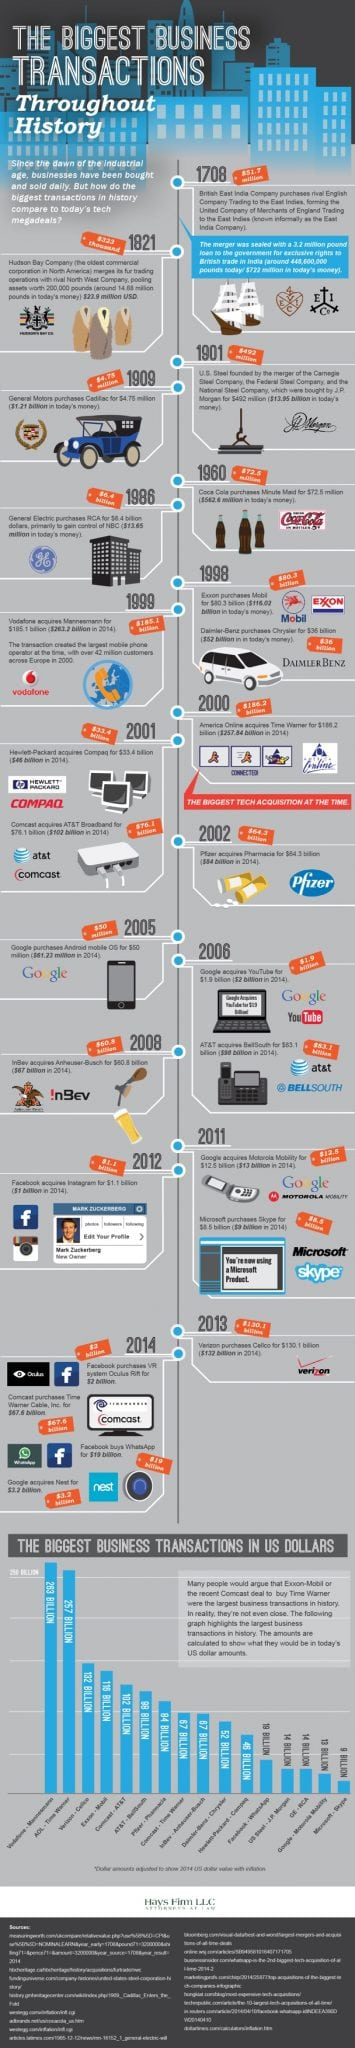 biggest-business-transactions-infographic